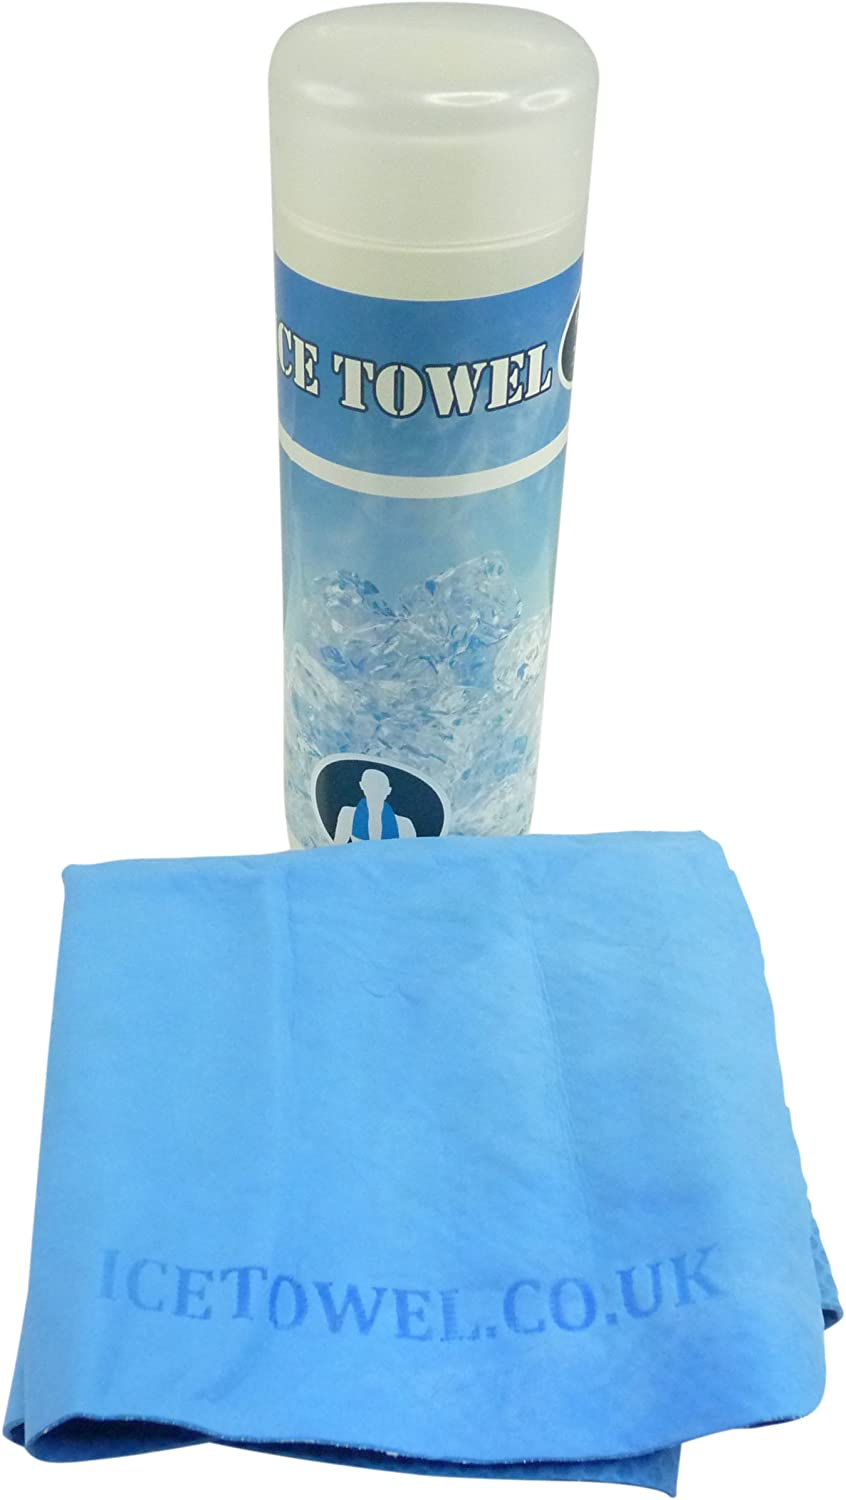 Ice Towel Cooling Towel